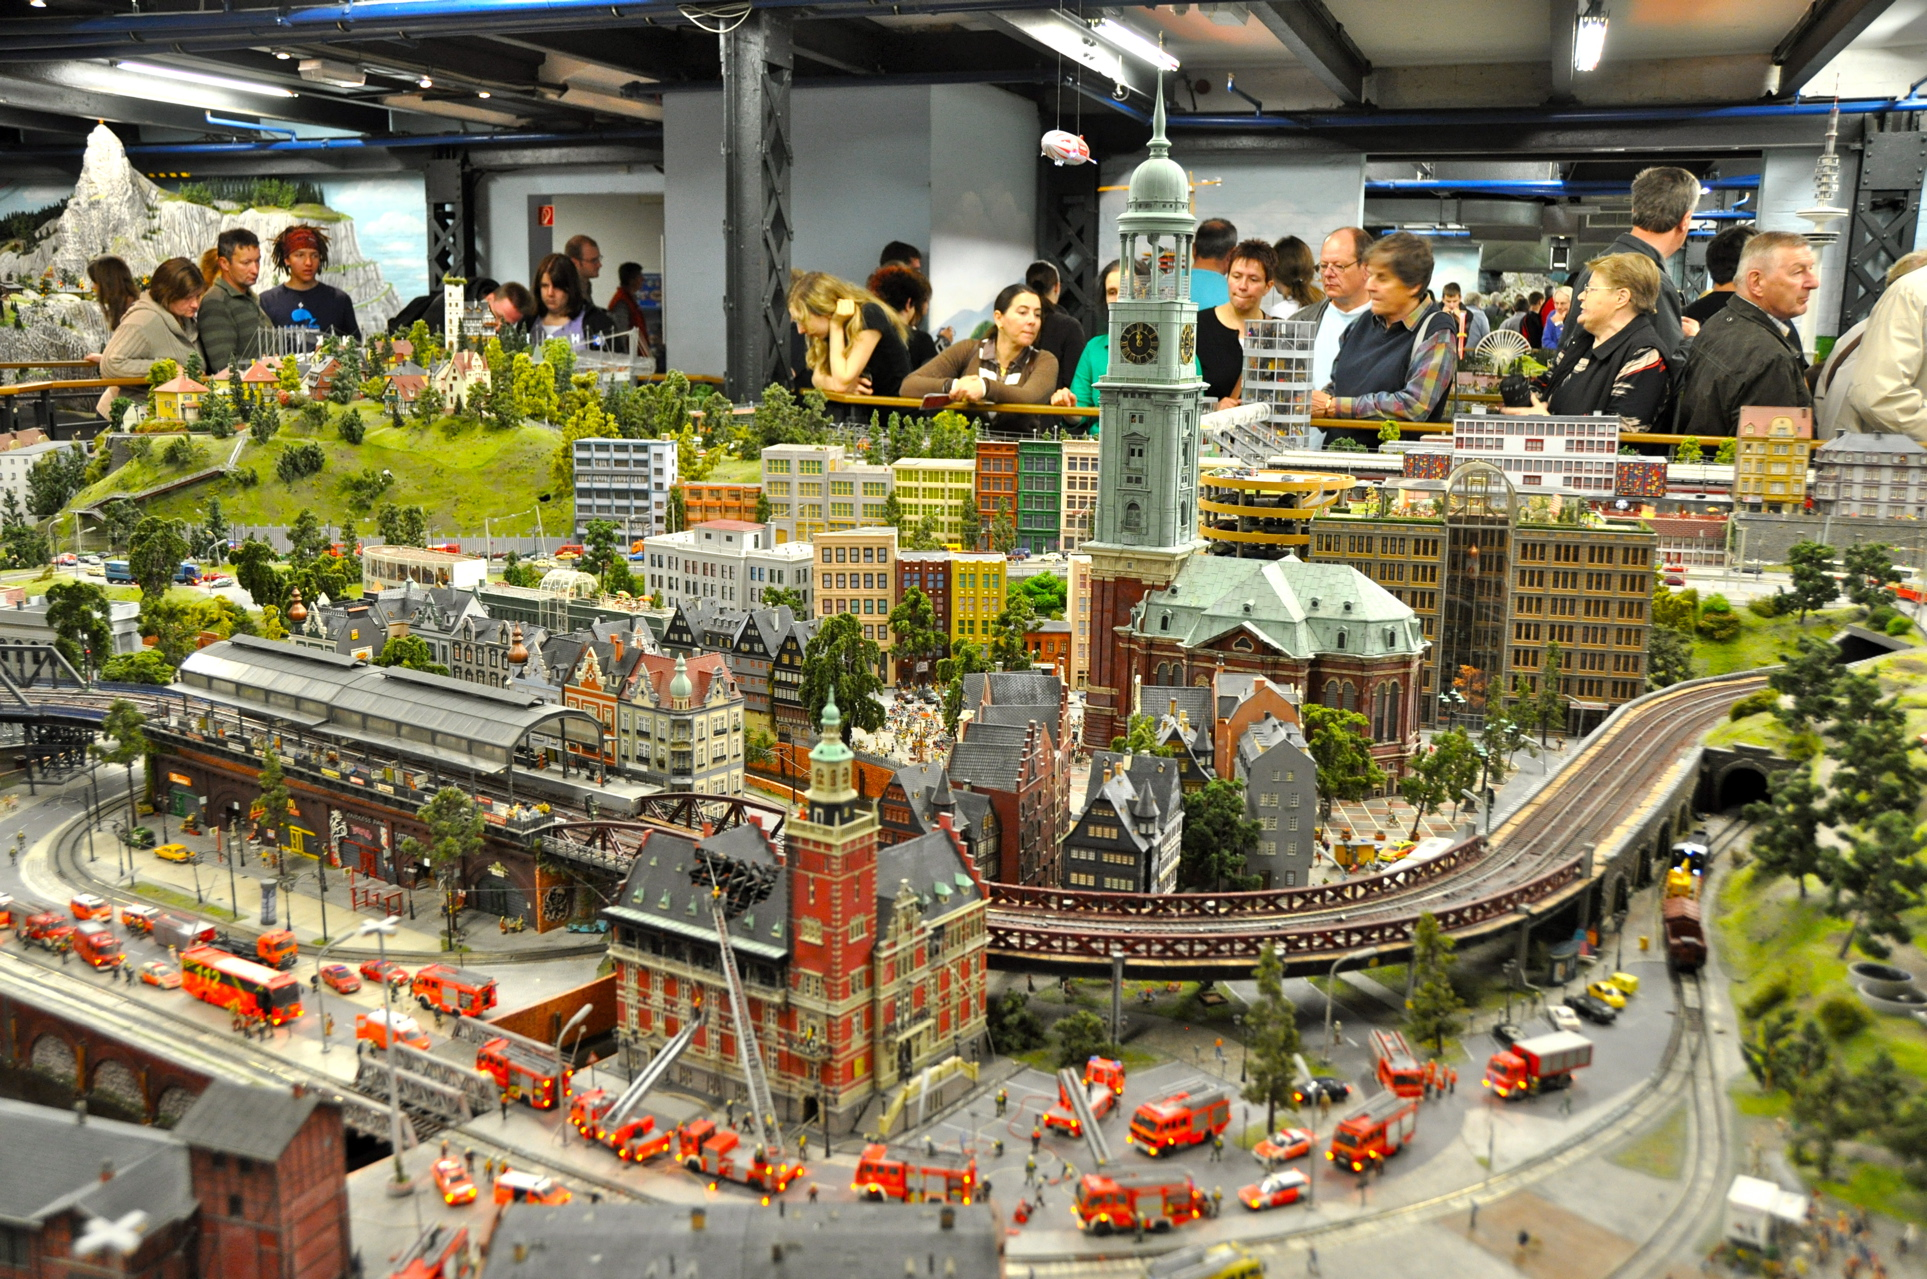 Surreal Miniatur Wunderland Comes To Life -homesthetics (3)